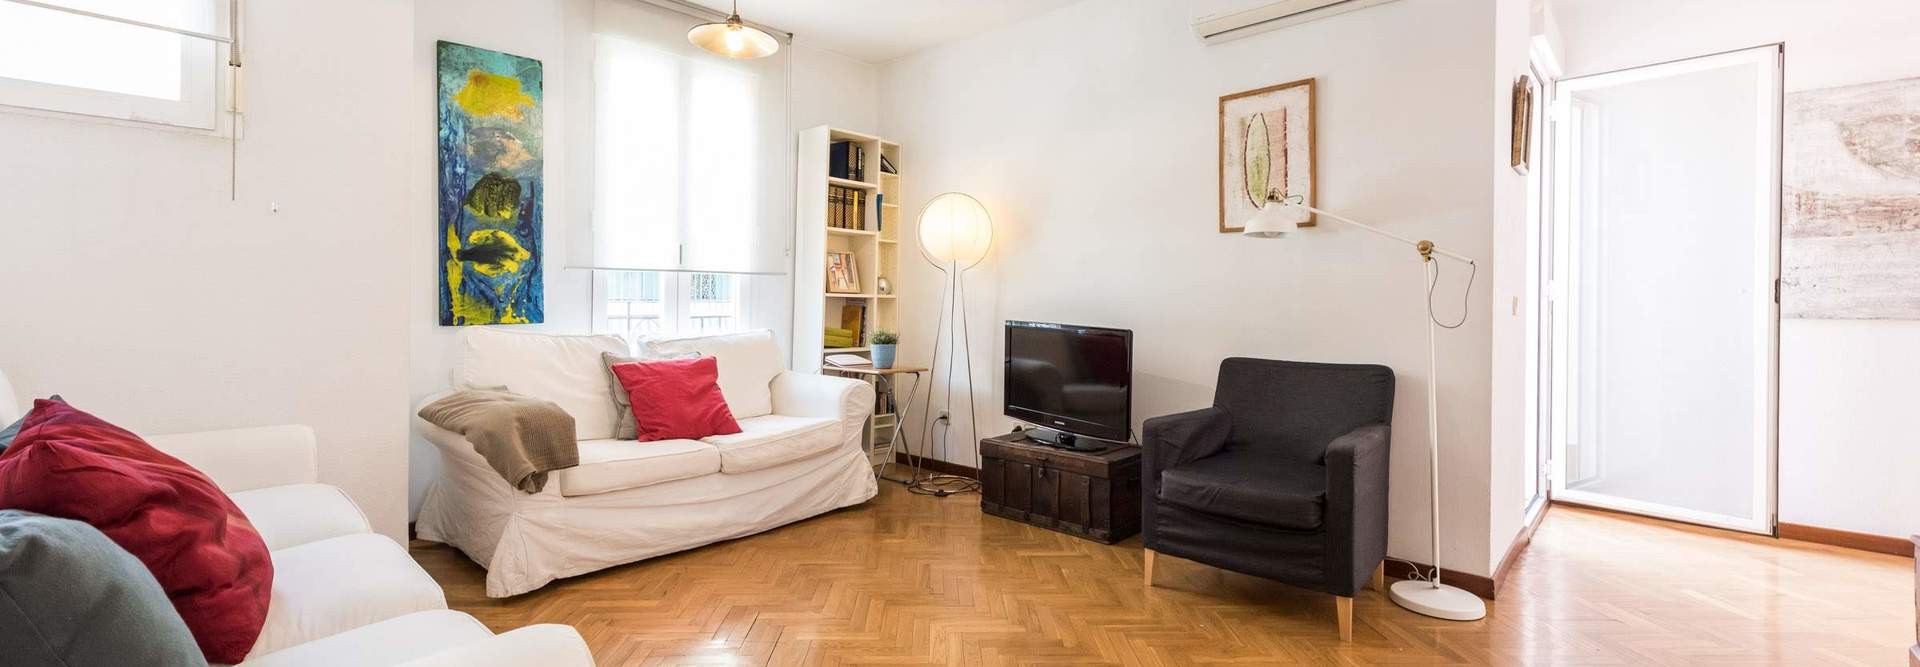 Home alquiler apartamento por d as madrid centro  13